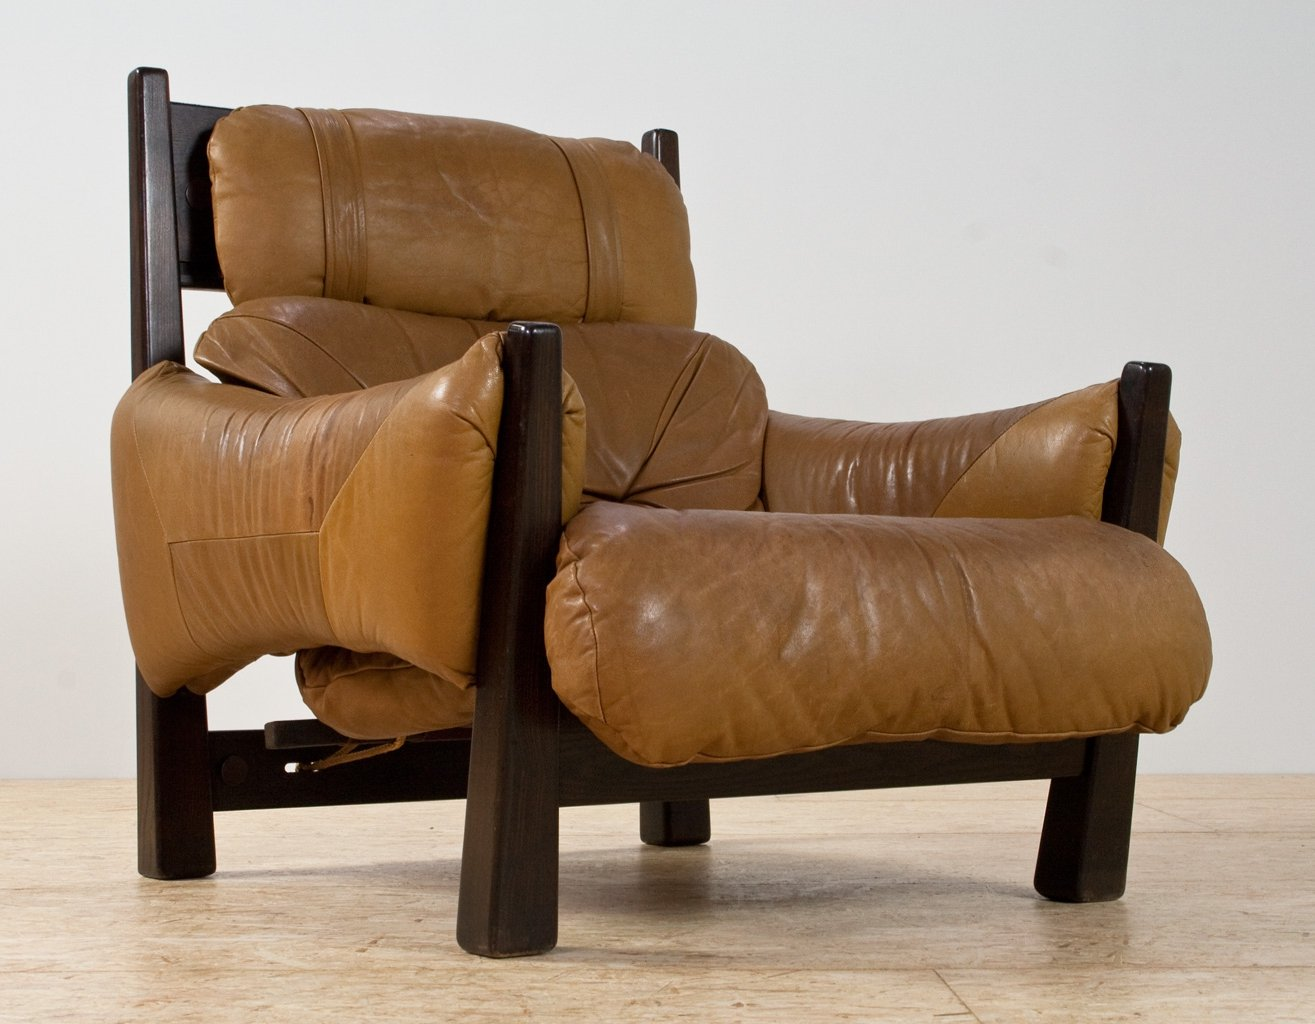 Swell Brazilian Modern Lounge Chair In Camel Coloured Leather Machost Co Dining Chair Design Ideas Machostcouk